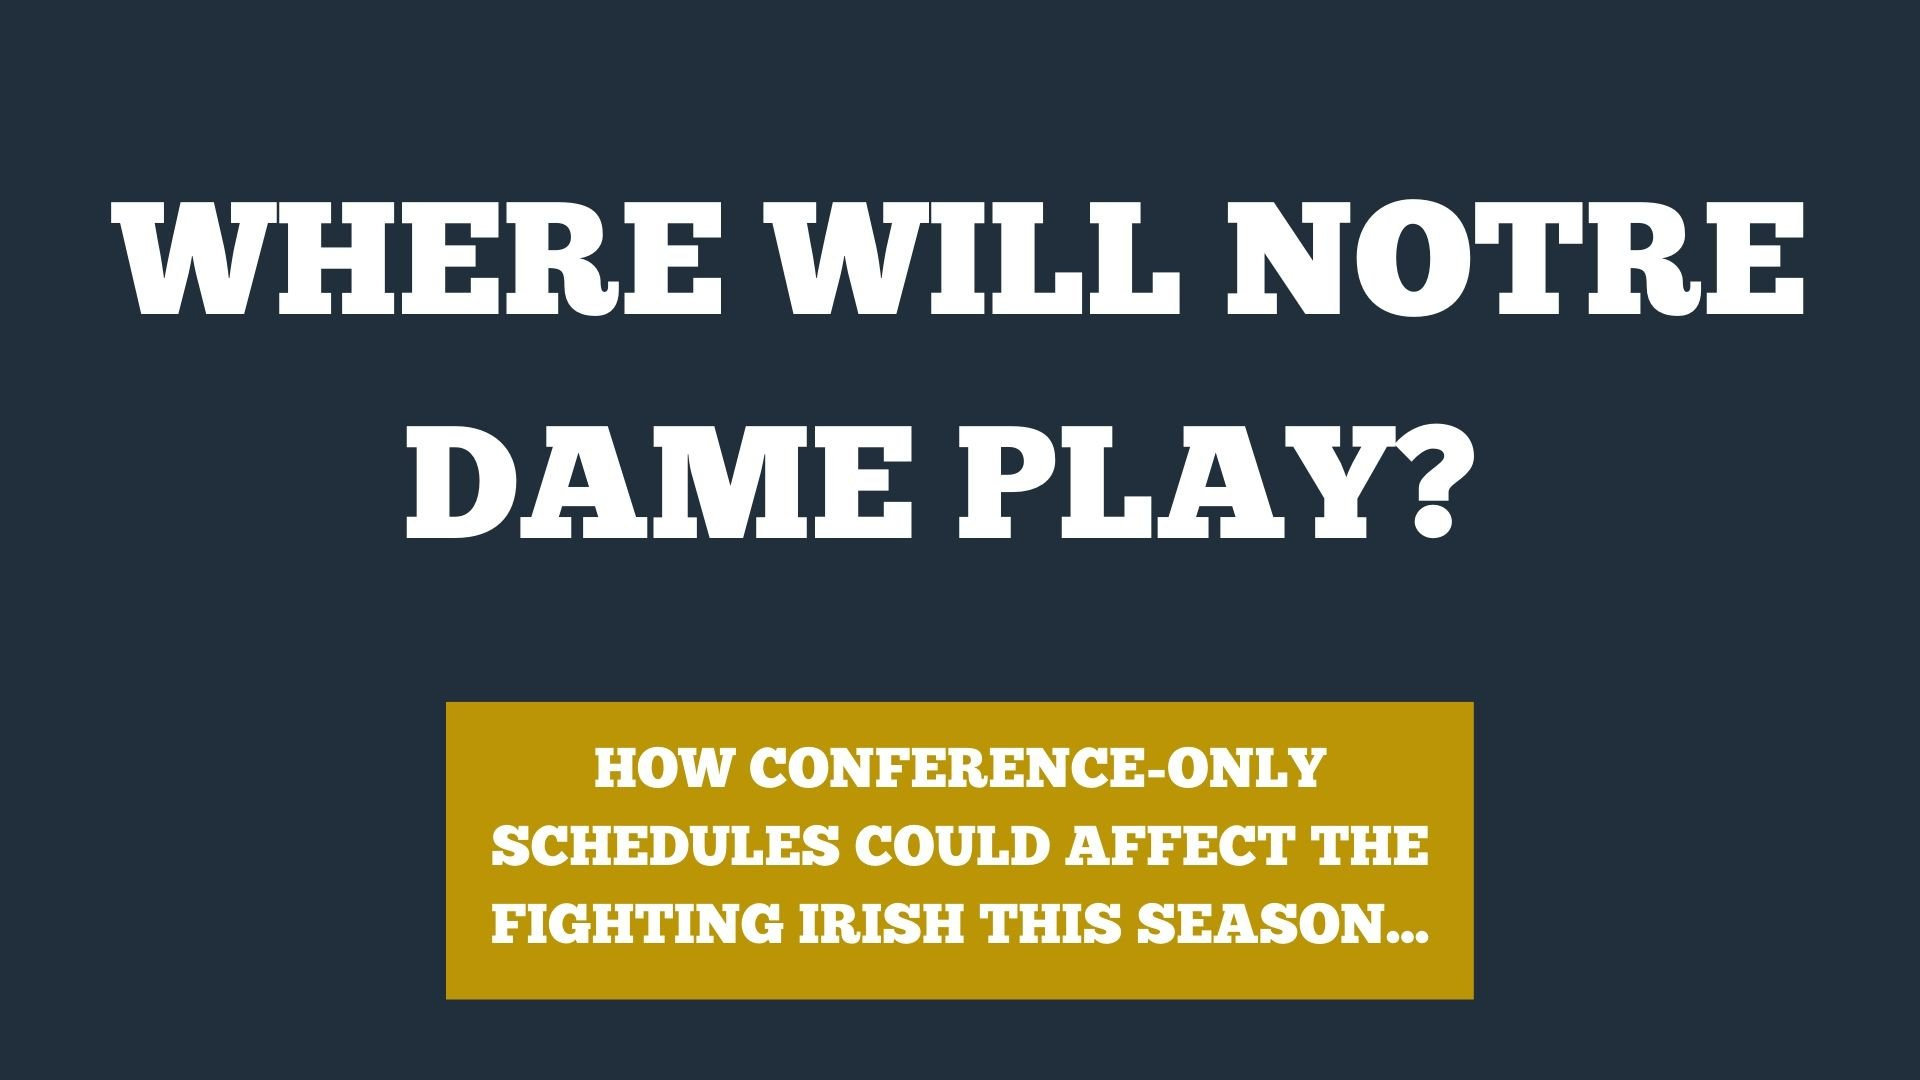 Where does Notre Dame's schedule stand in 2020?